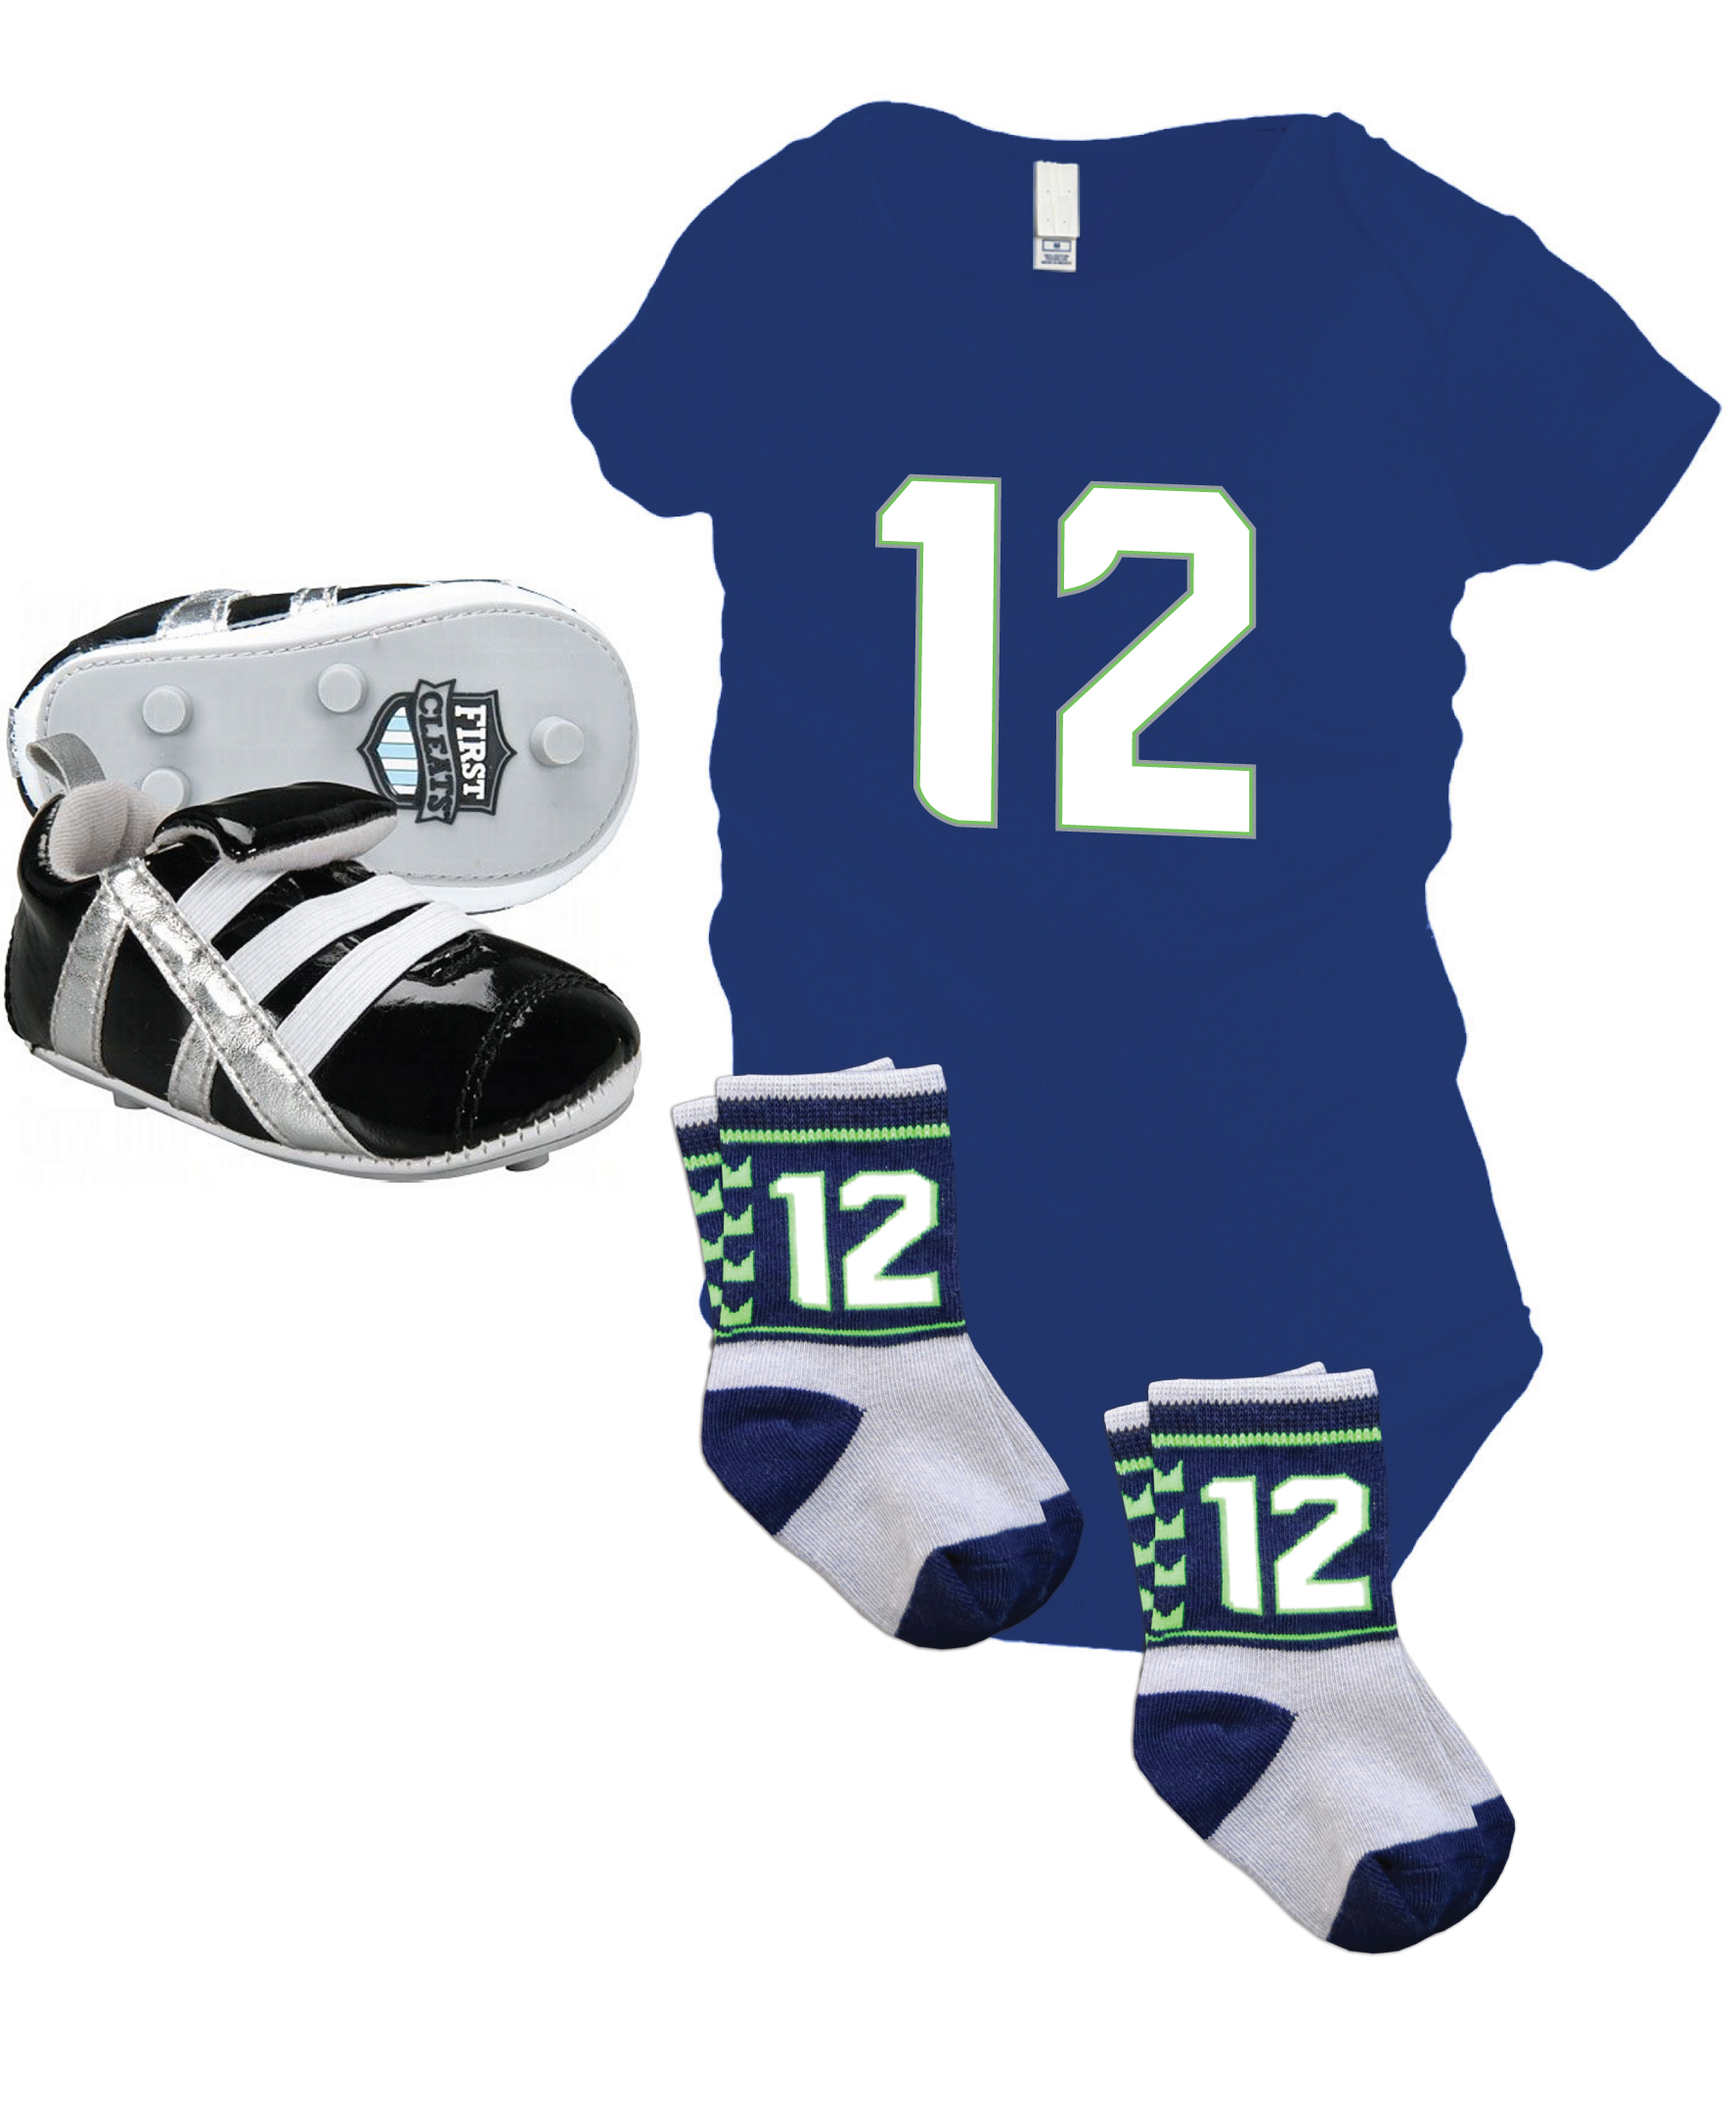 Seattle Seahawks number 12 baby gift pack: #12 onesie, socks and cleats